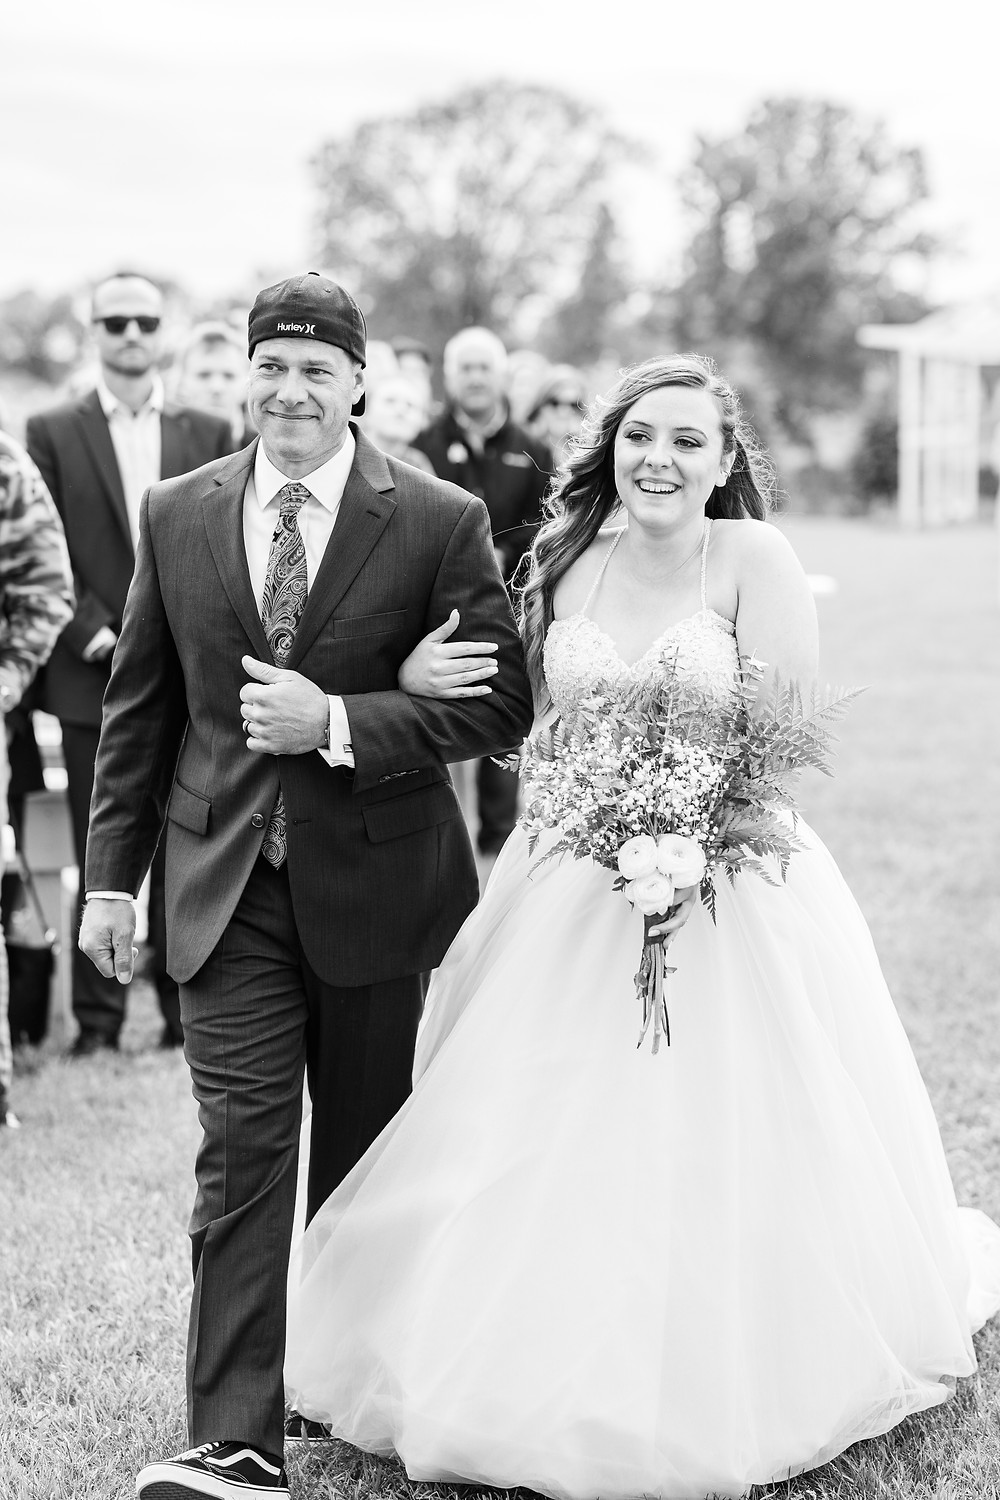 Josh and Andrea wedding photography husband and wife photographer team michigan pictures hydrangea blu barn bride and father of bride